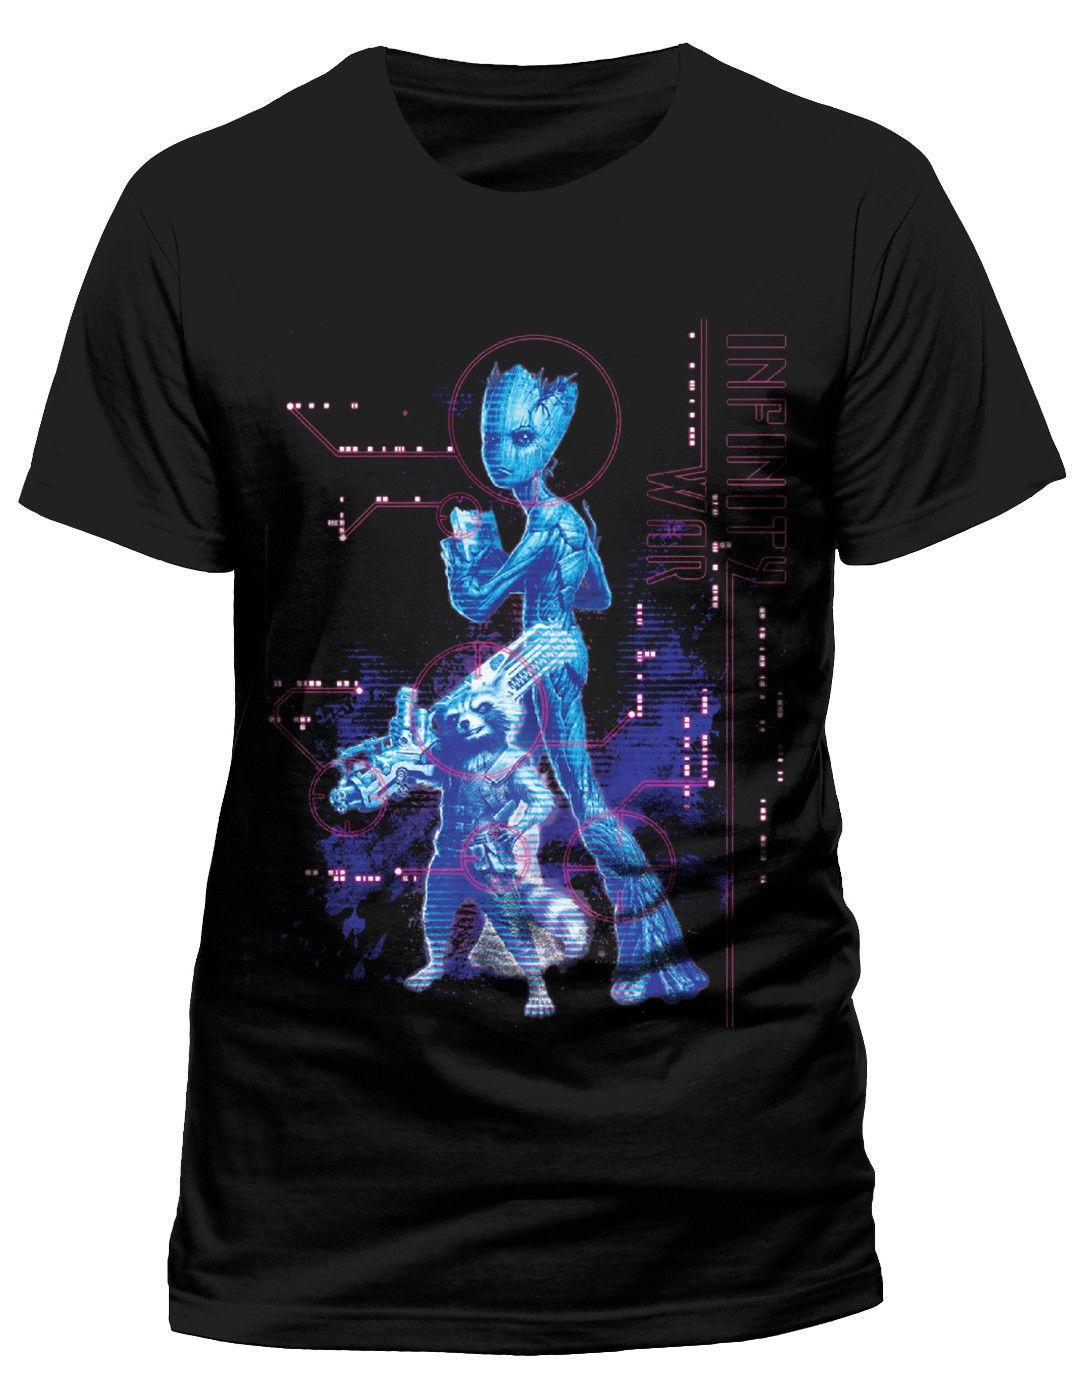 f4027791a Marvel Avengers Infinity War 'Neon Groot' T-Shirt - NEW & OFFICIAL! Men  Women Unisex Fashion tshirt Free Shipping black